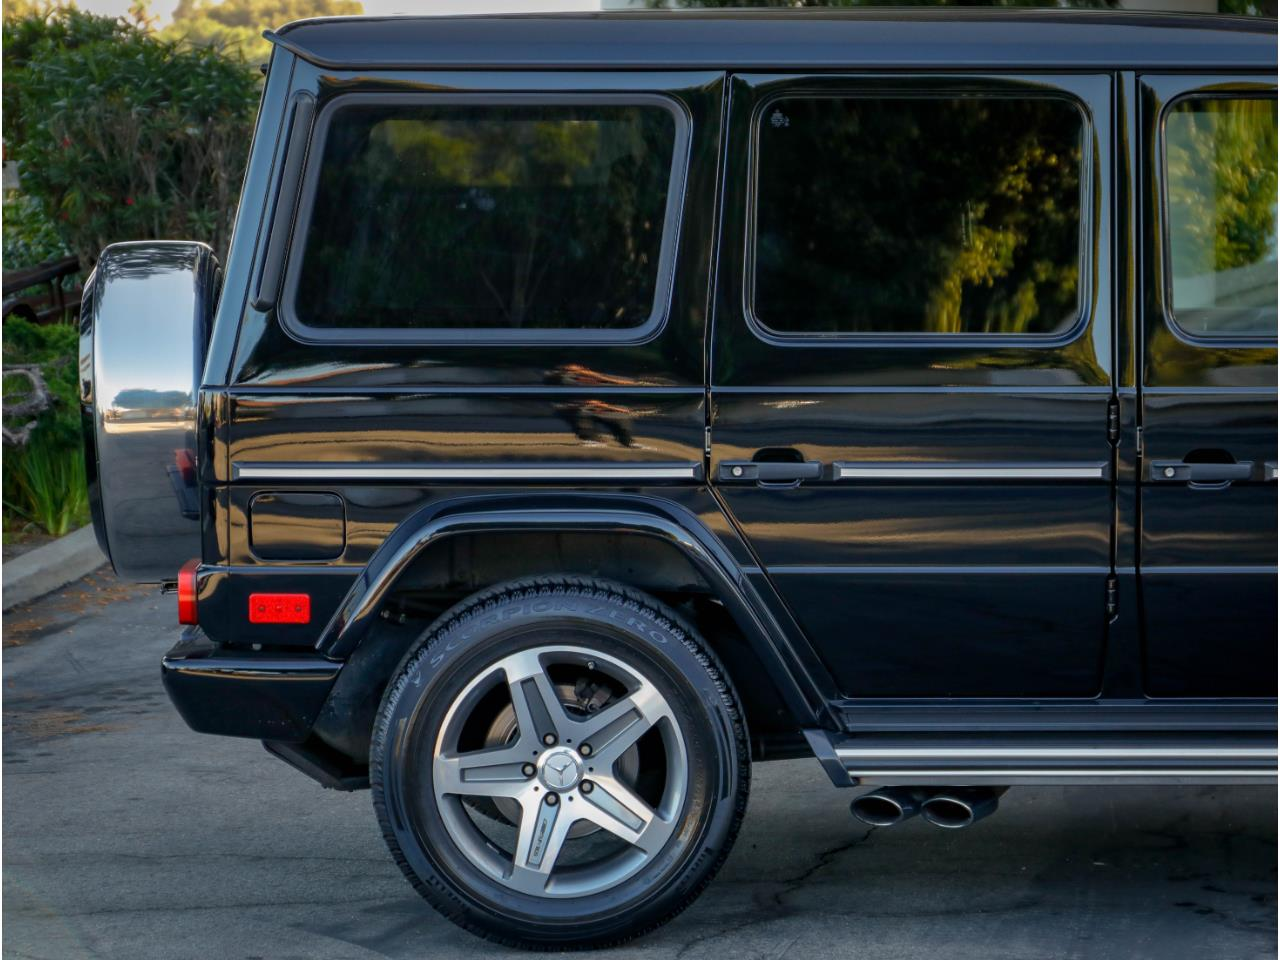 2011 Mercedes-Benz G550 for sale in Marina Del Rey, CA – photo 11